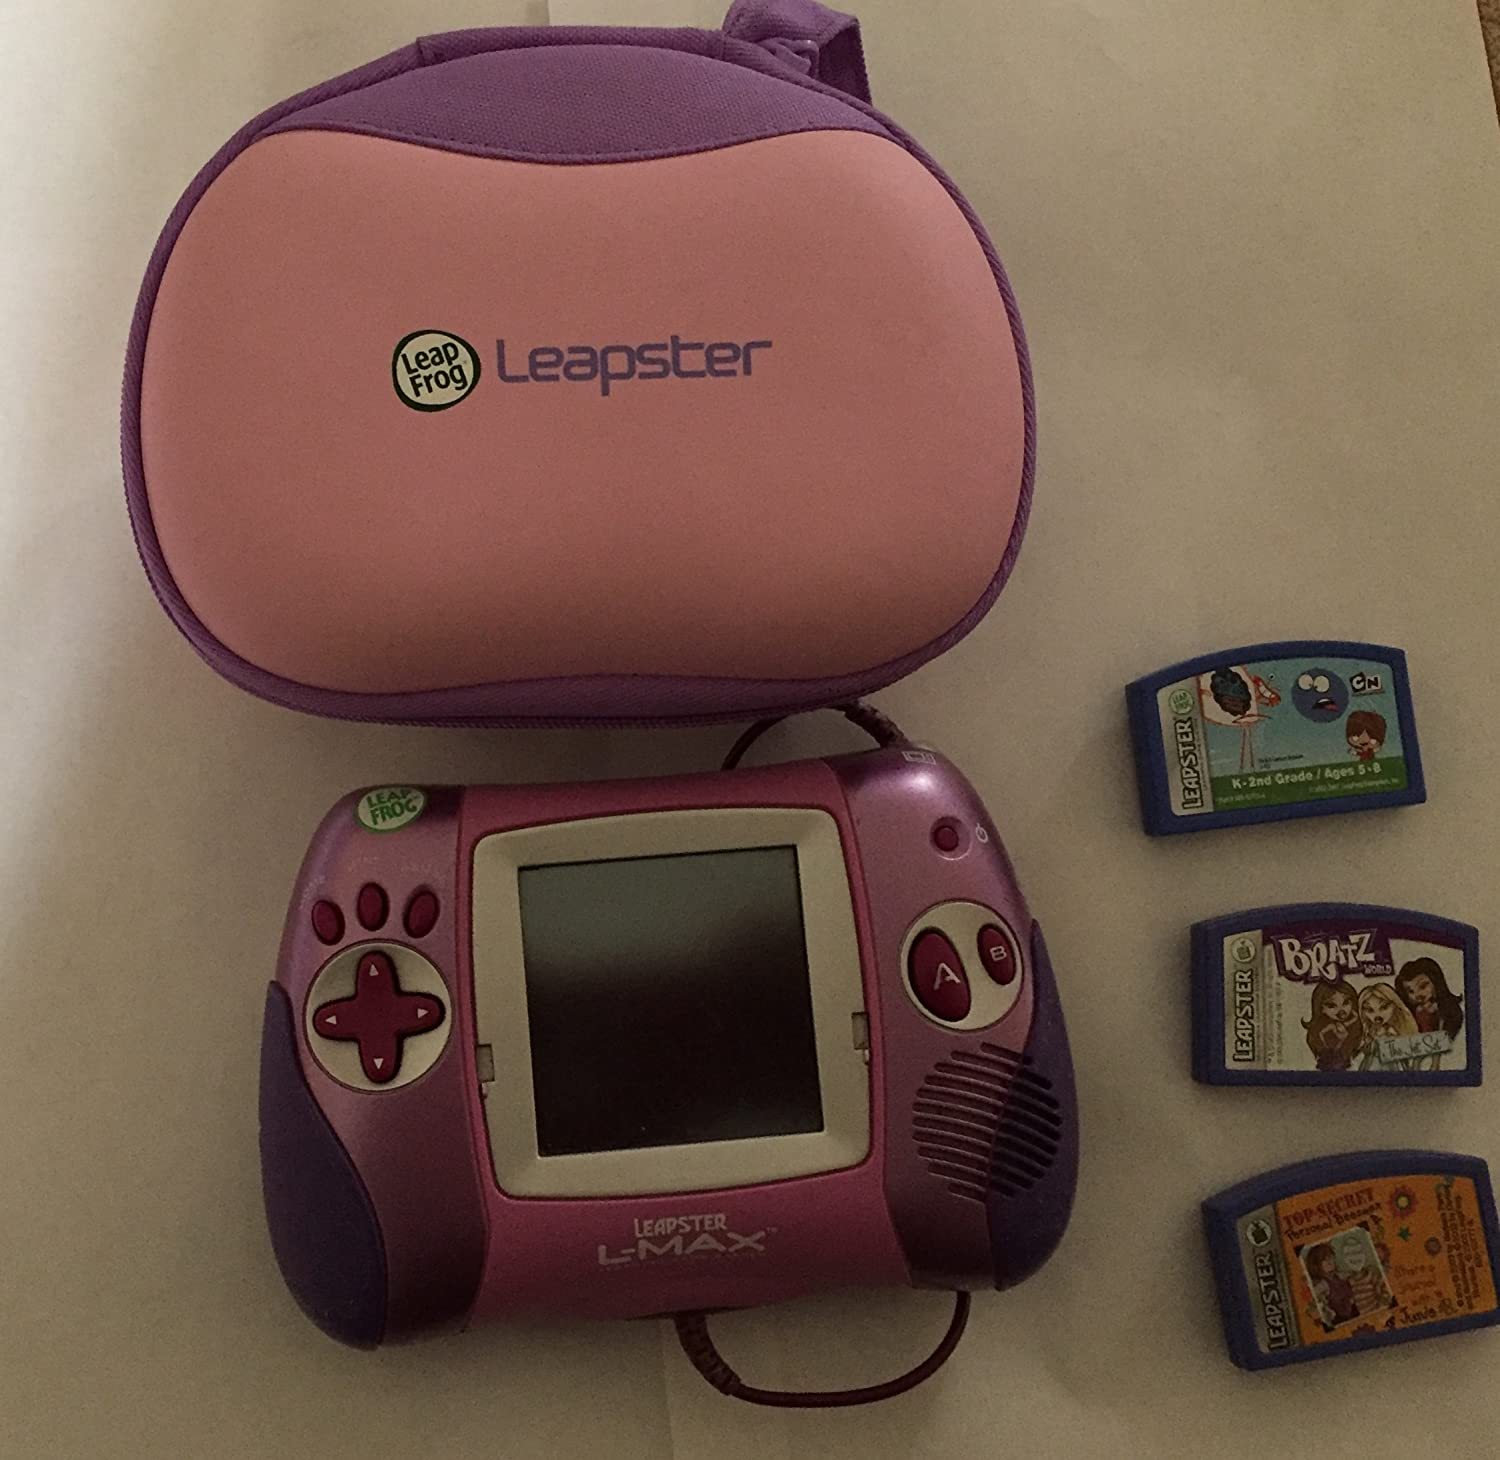 Leap Frog Leapster L-Max Girl Portable and TV Learning System